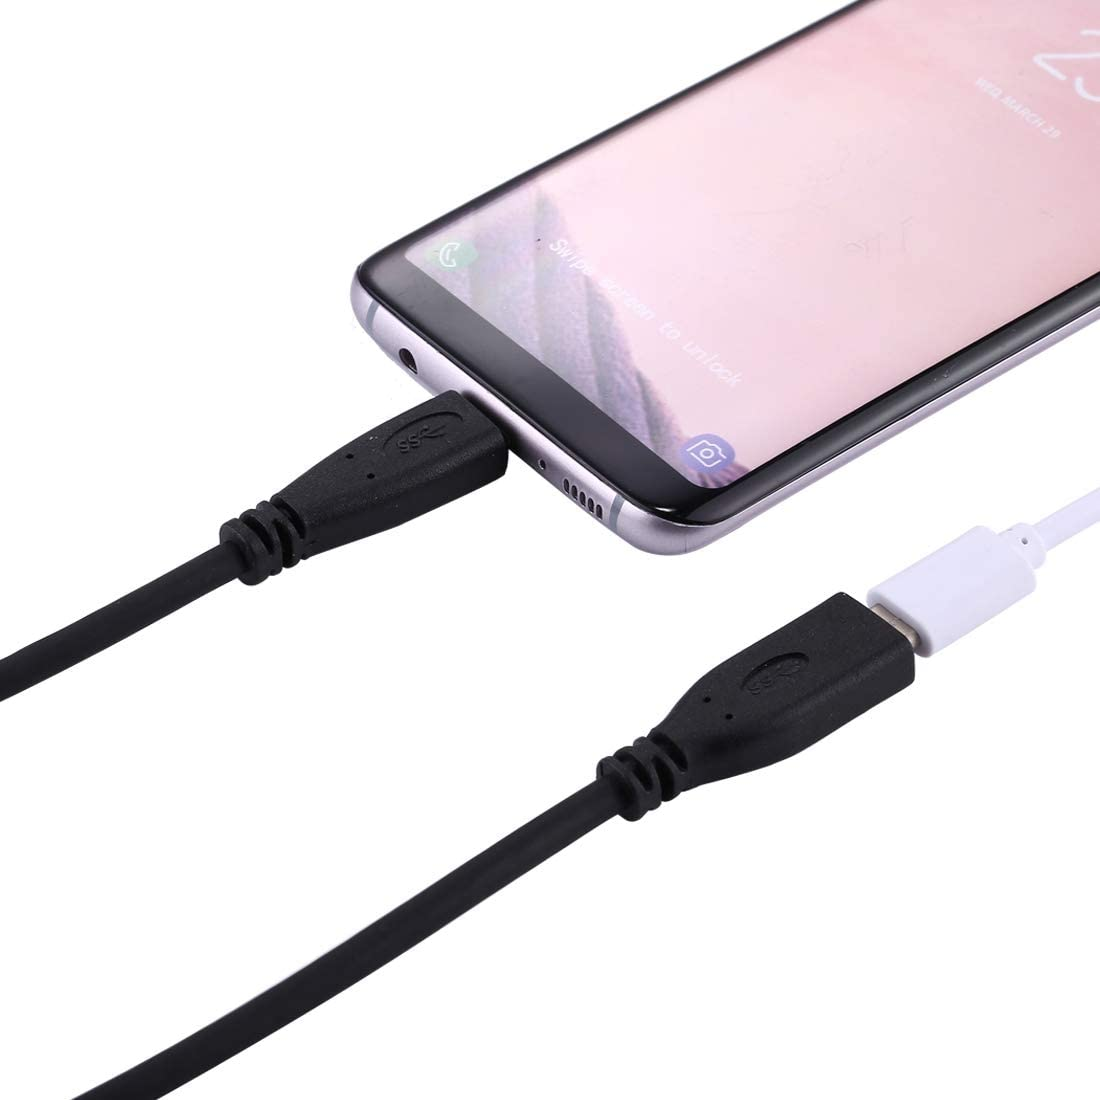 // LG G6 Xiaomi Mi6 /& for Galaxy S8 /& S8 Huawei P10 /& P10 Plus//Oneplus 5 Compact and Lightweight Cable 1m USB-C//Type-C 3.1 Male to USB-C//Type-C Female Connector Adapter Cable